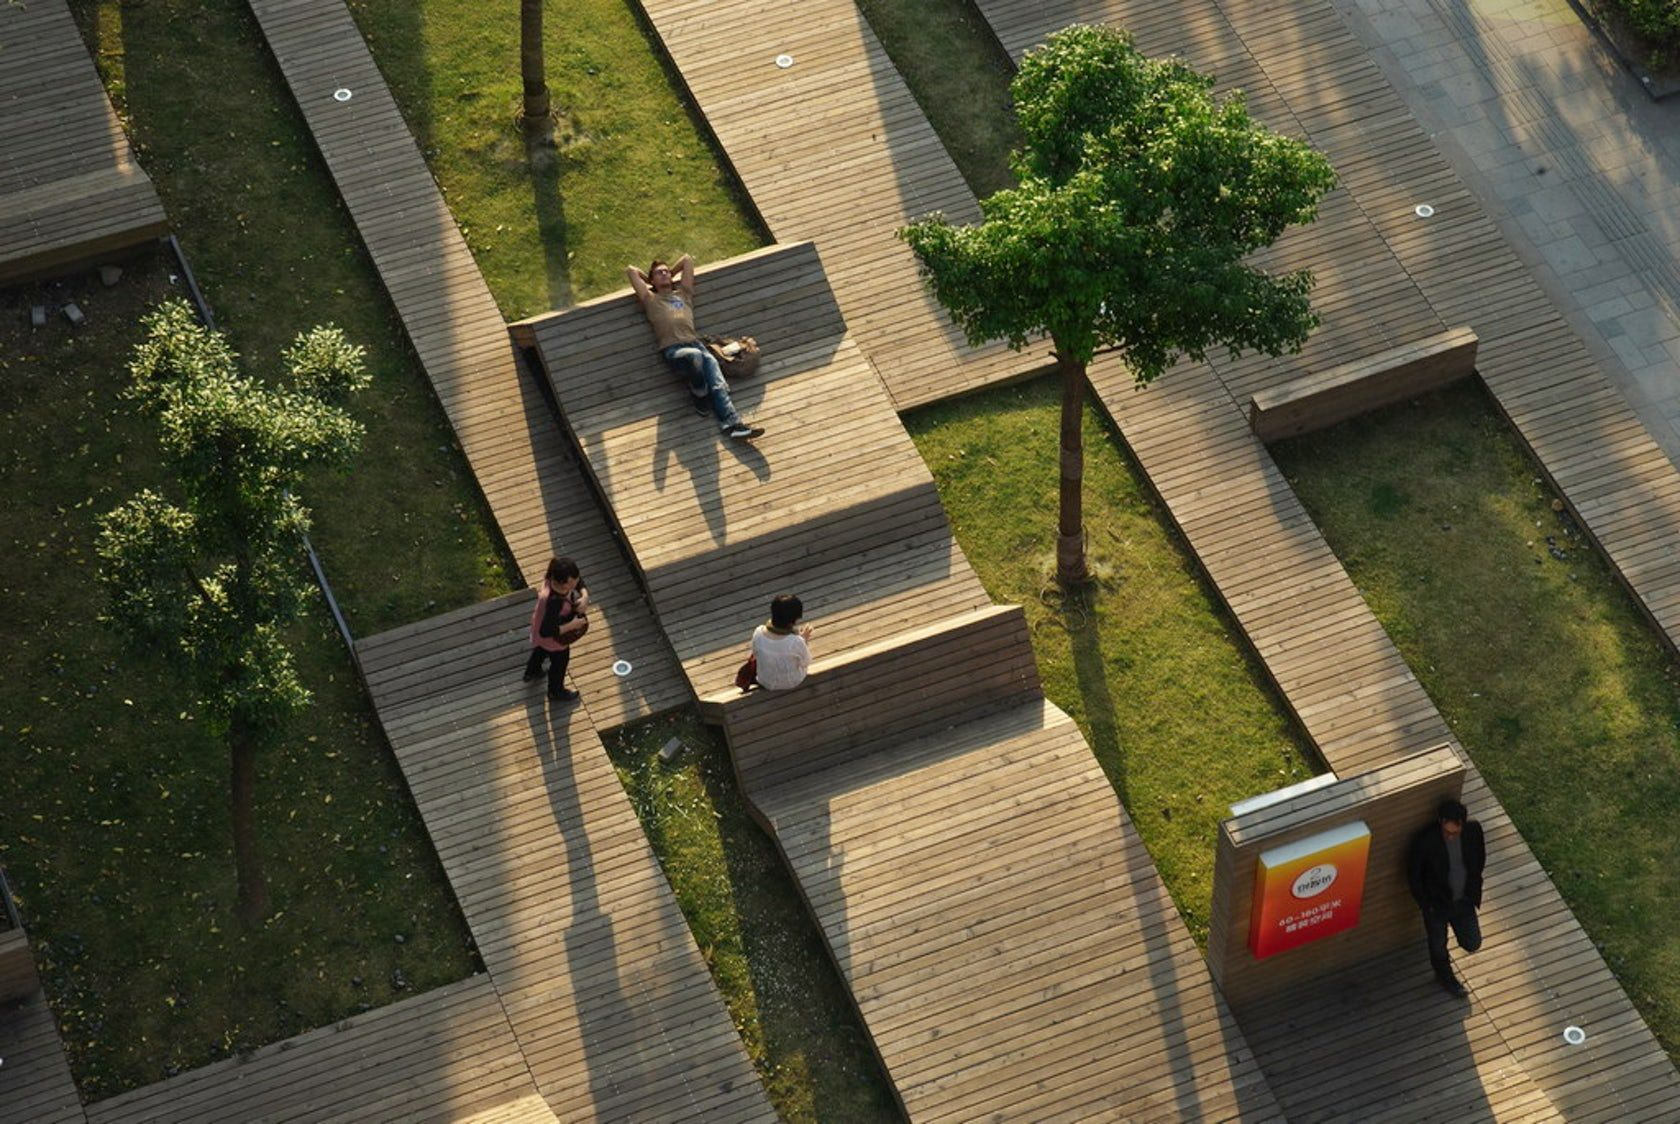 Week 2 Iiturbanism Kik Park Is A Small Park In A Dense Area Within Shanghai China The Pocket Park Serves A Parking Design Landscape Architecture Urban Park